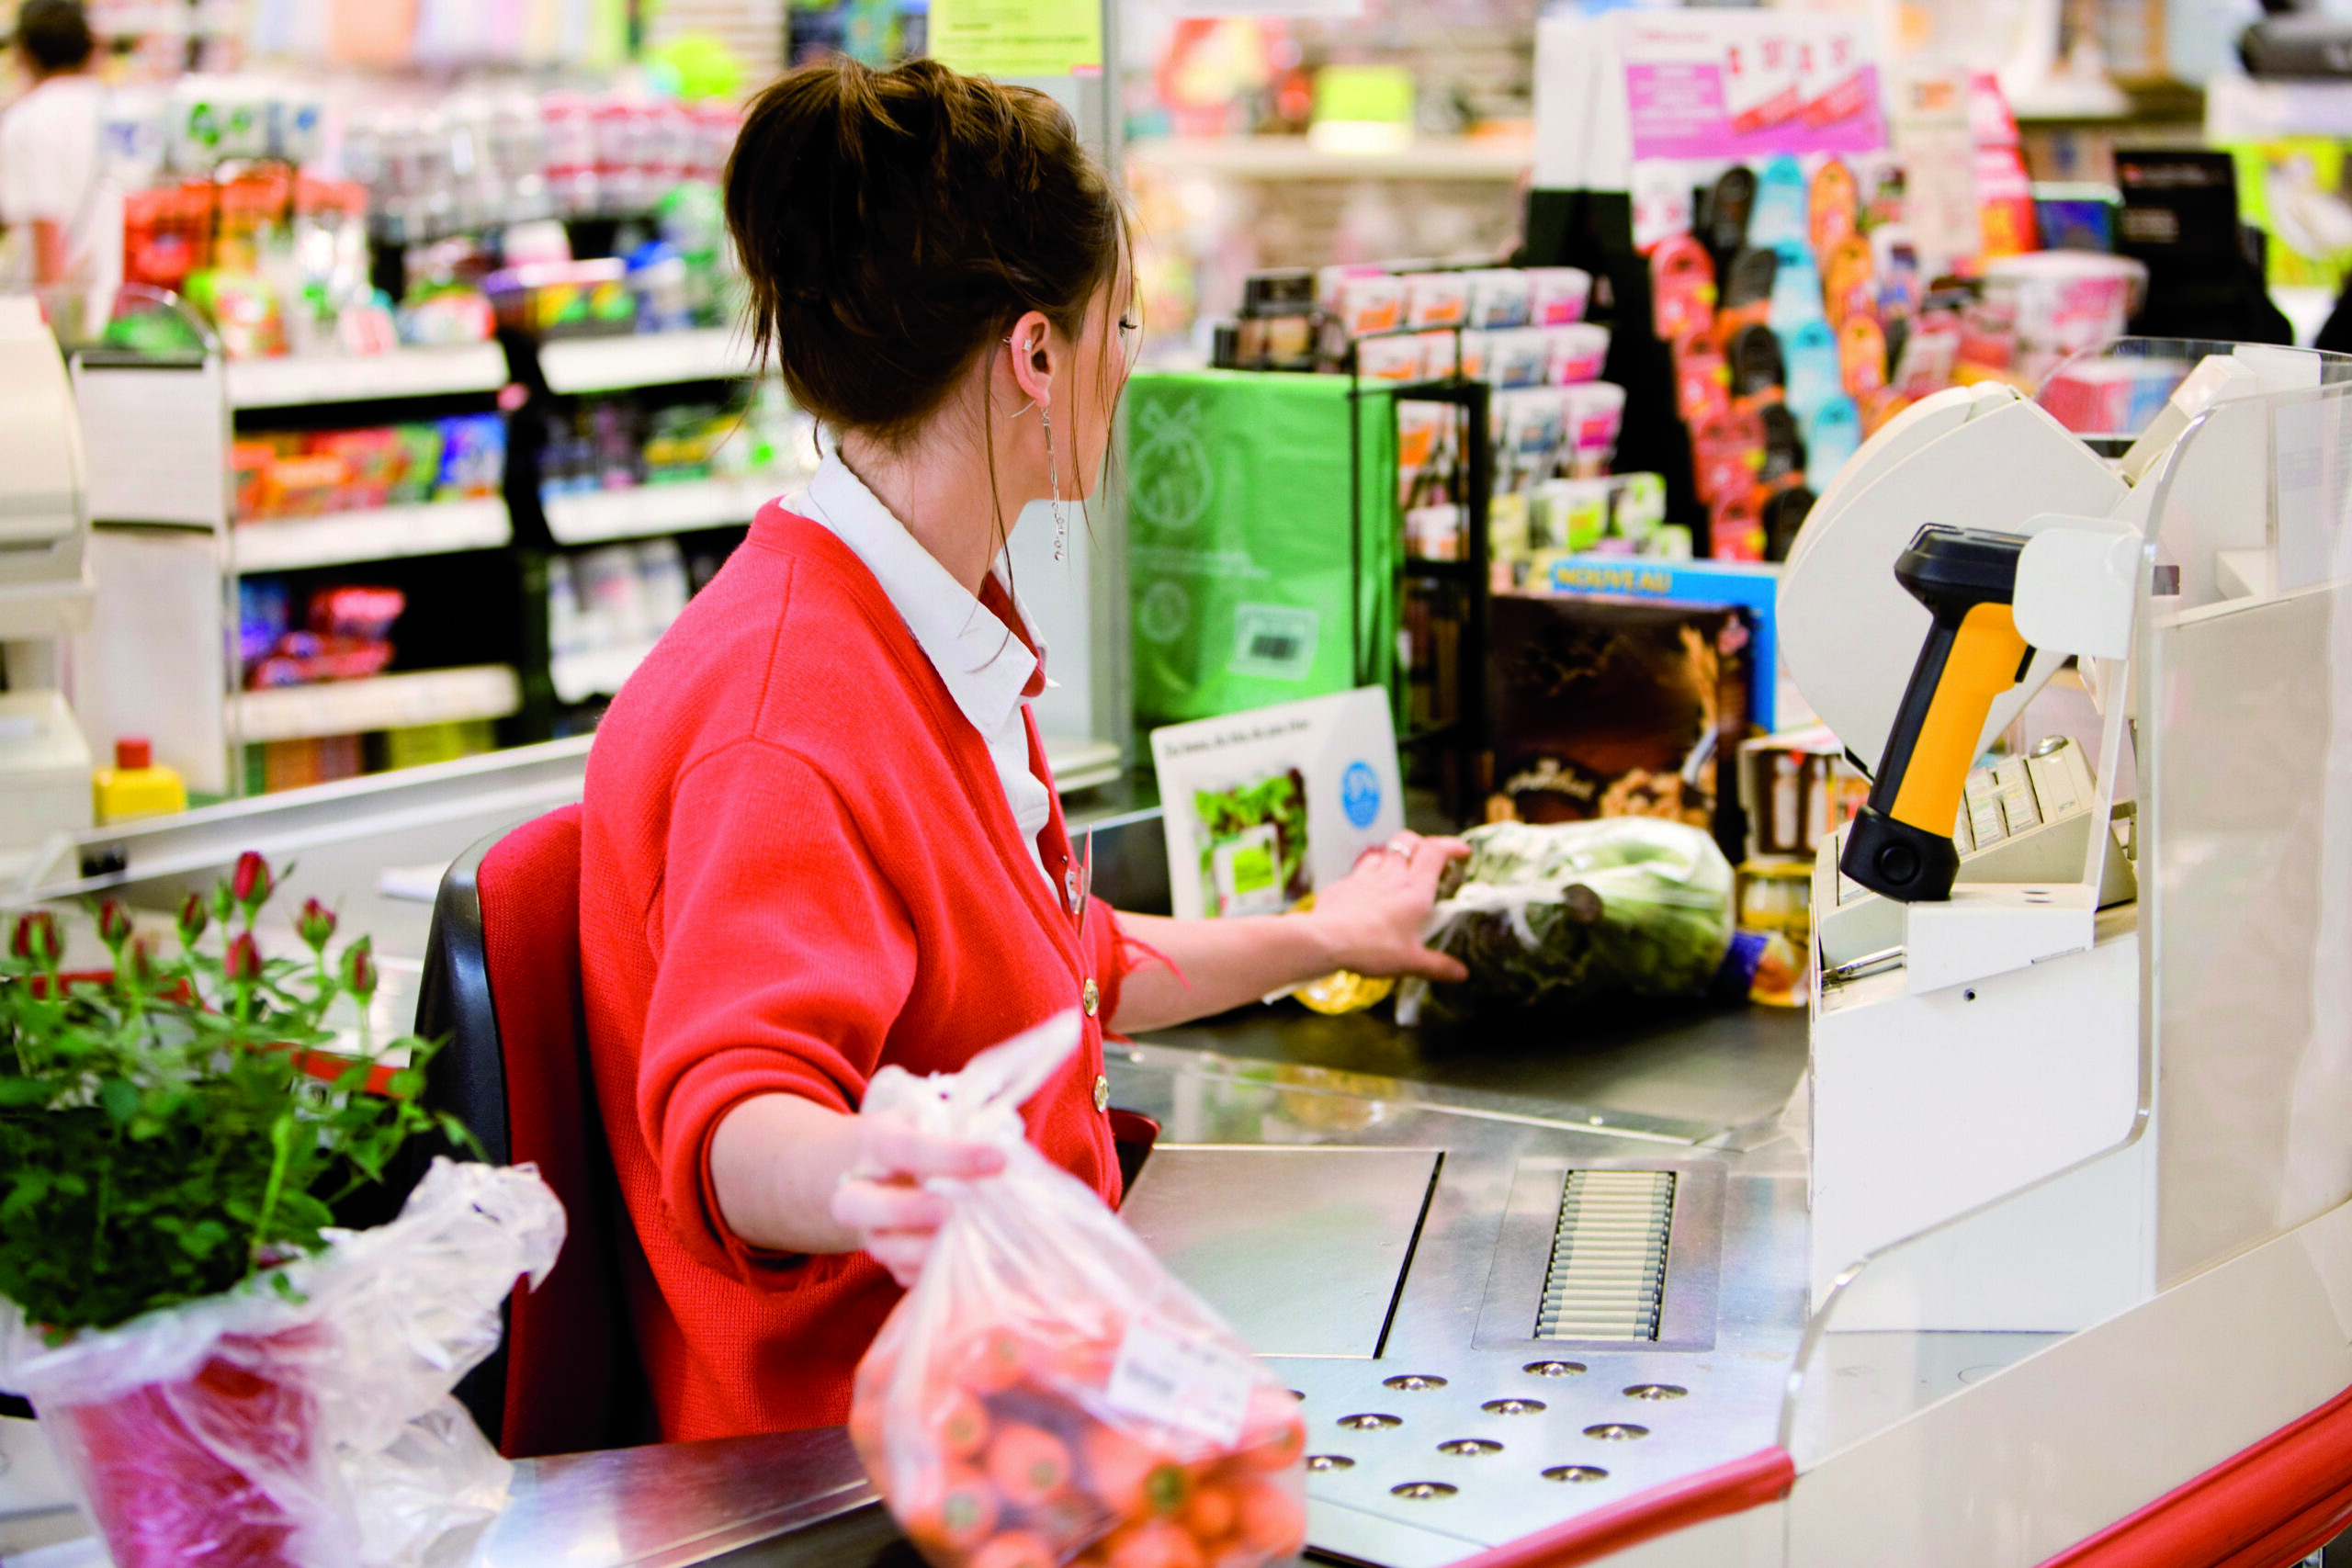 Cashier totaling grocery purchases No third party sales.